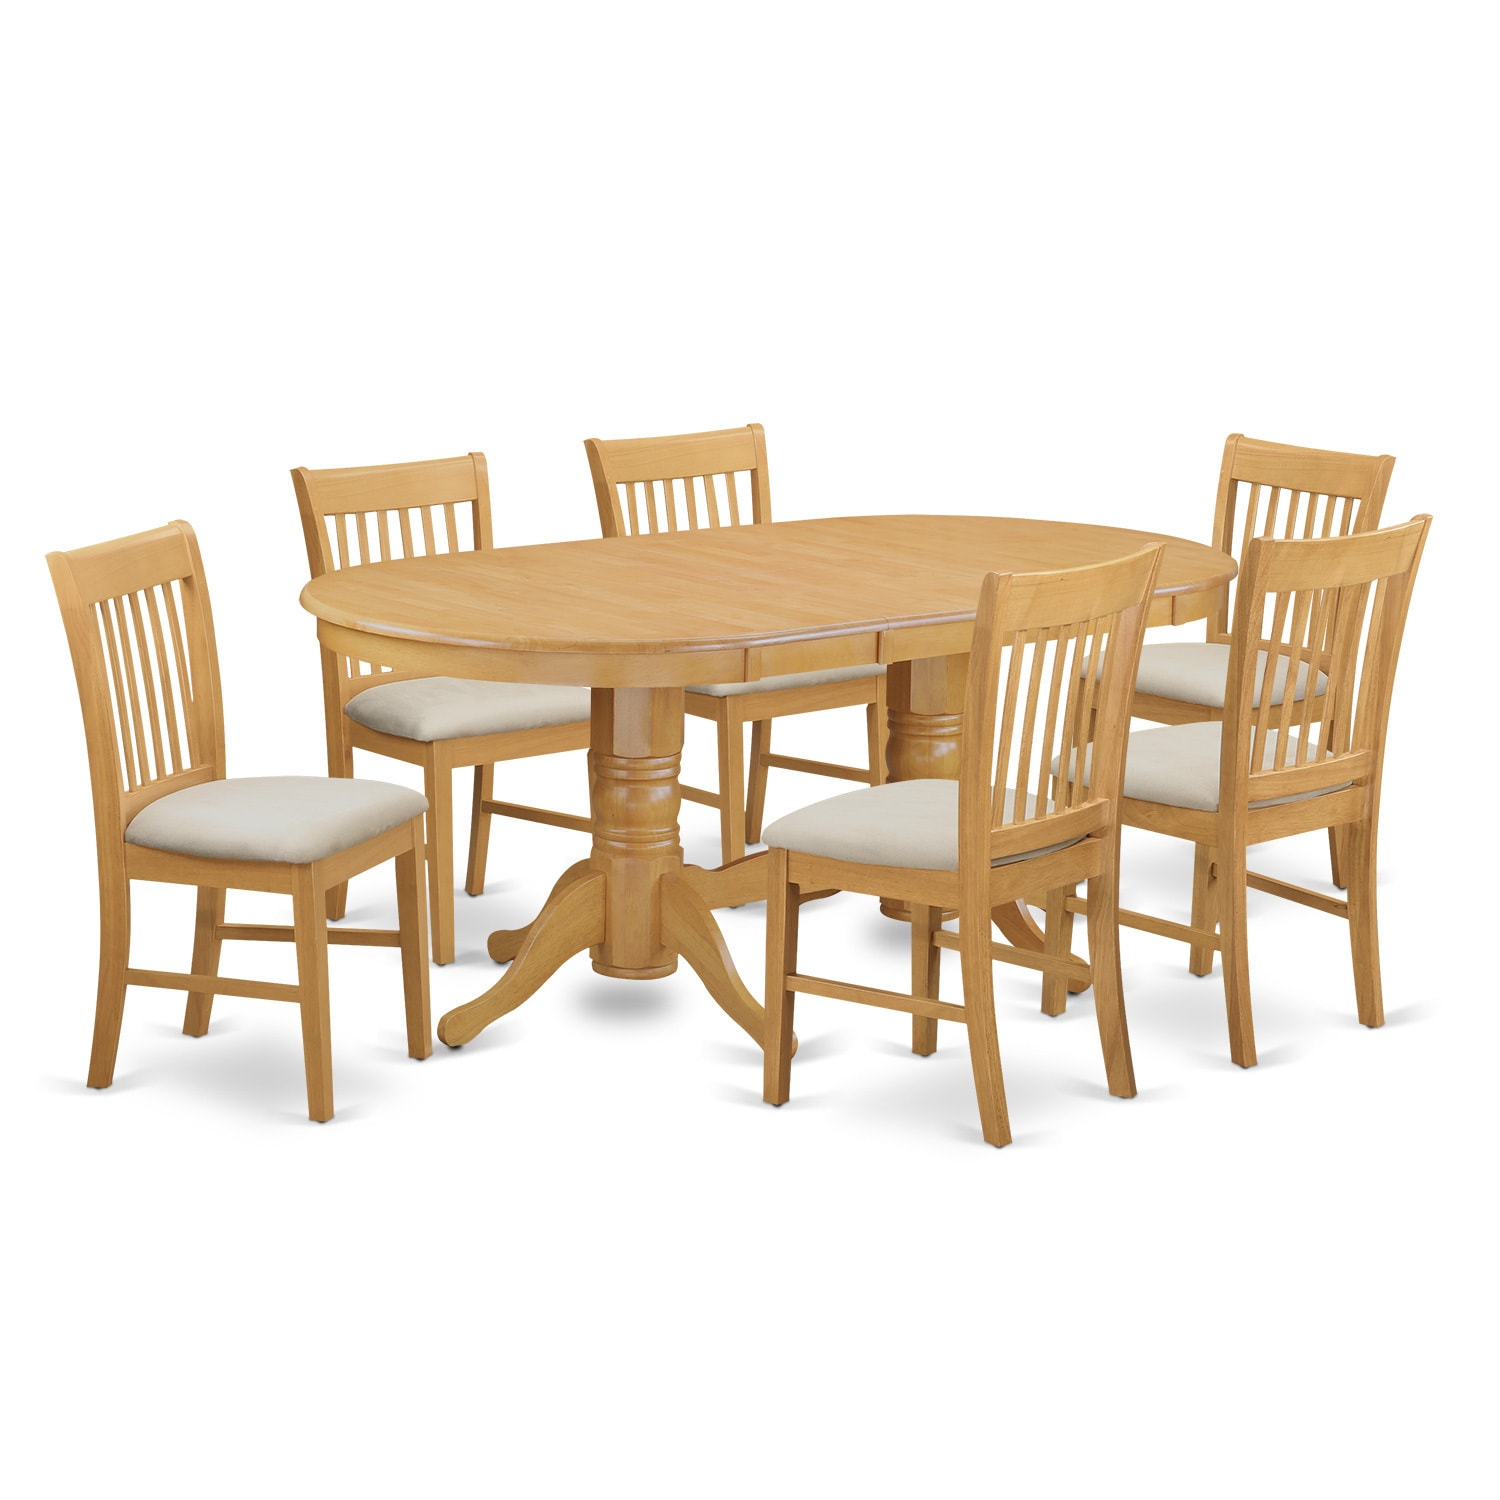 VANO7-OAK 7 Piece Dinette set - Kitchen dinette table and...